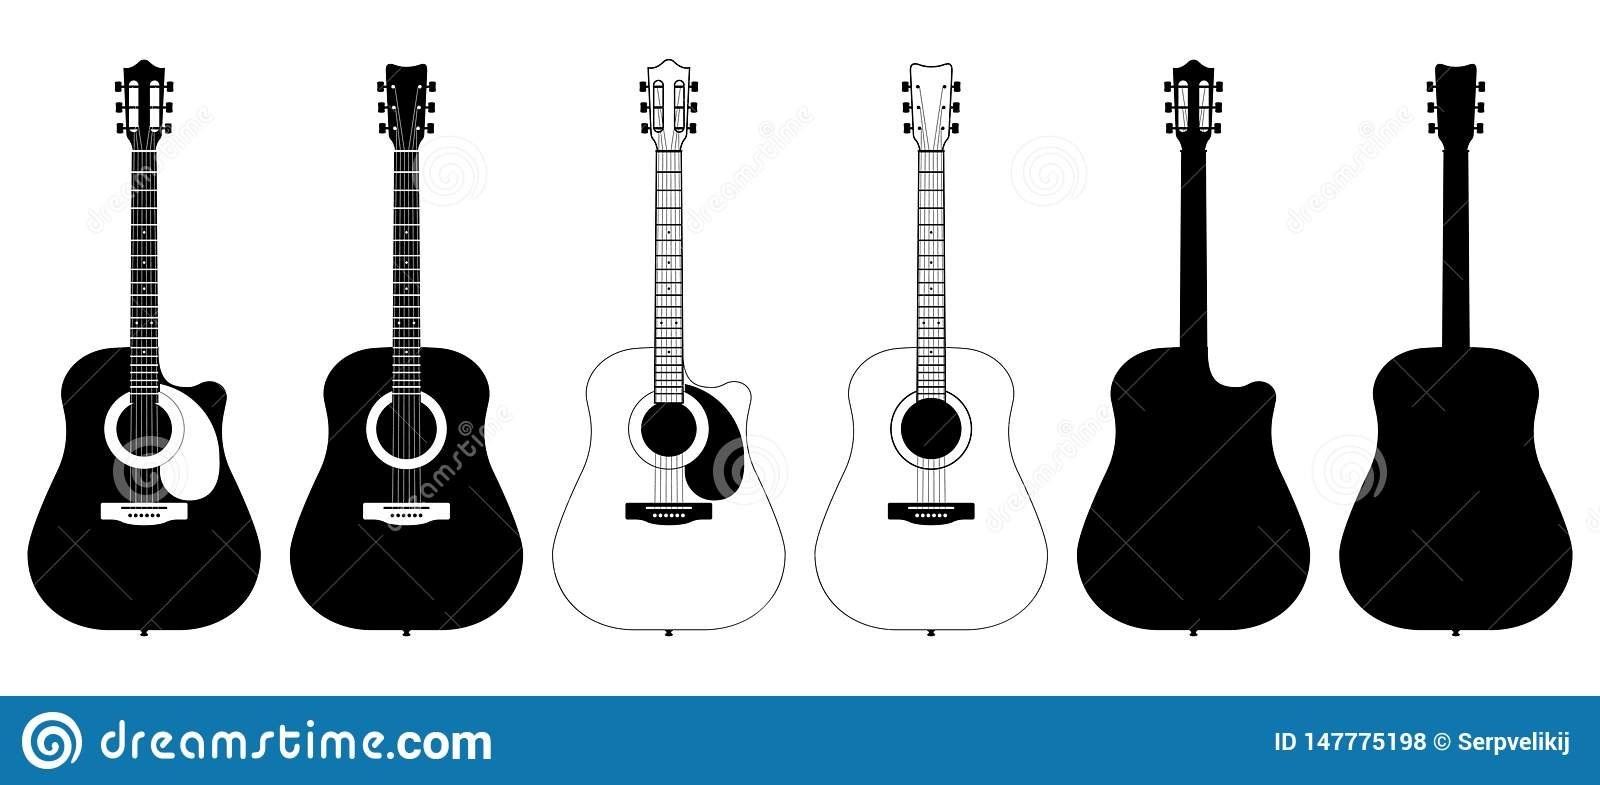 A Set Of Acoustic Classic Guitars Of Black On White Background String Musical Instruments Stock Vector Illustration Of Isolated Instrument 147775198